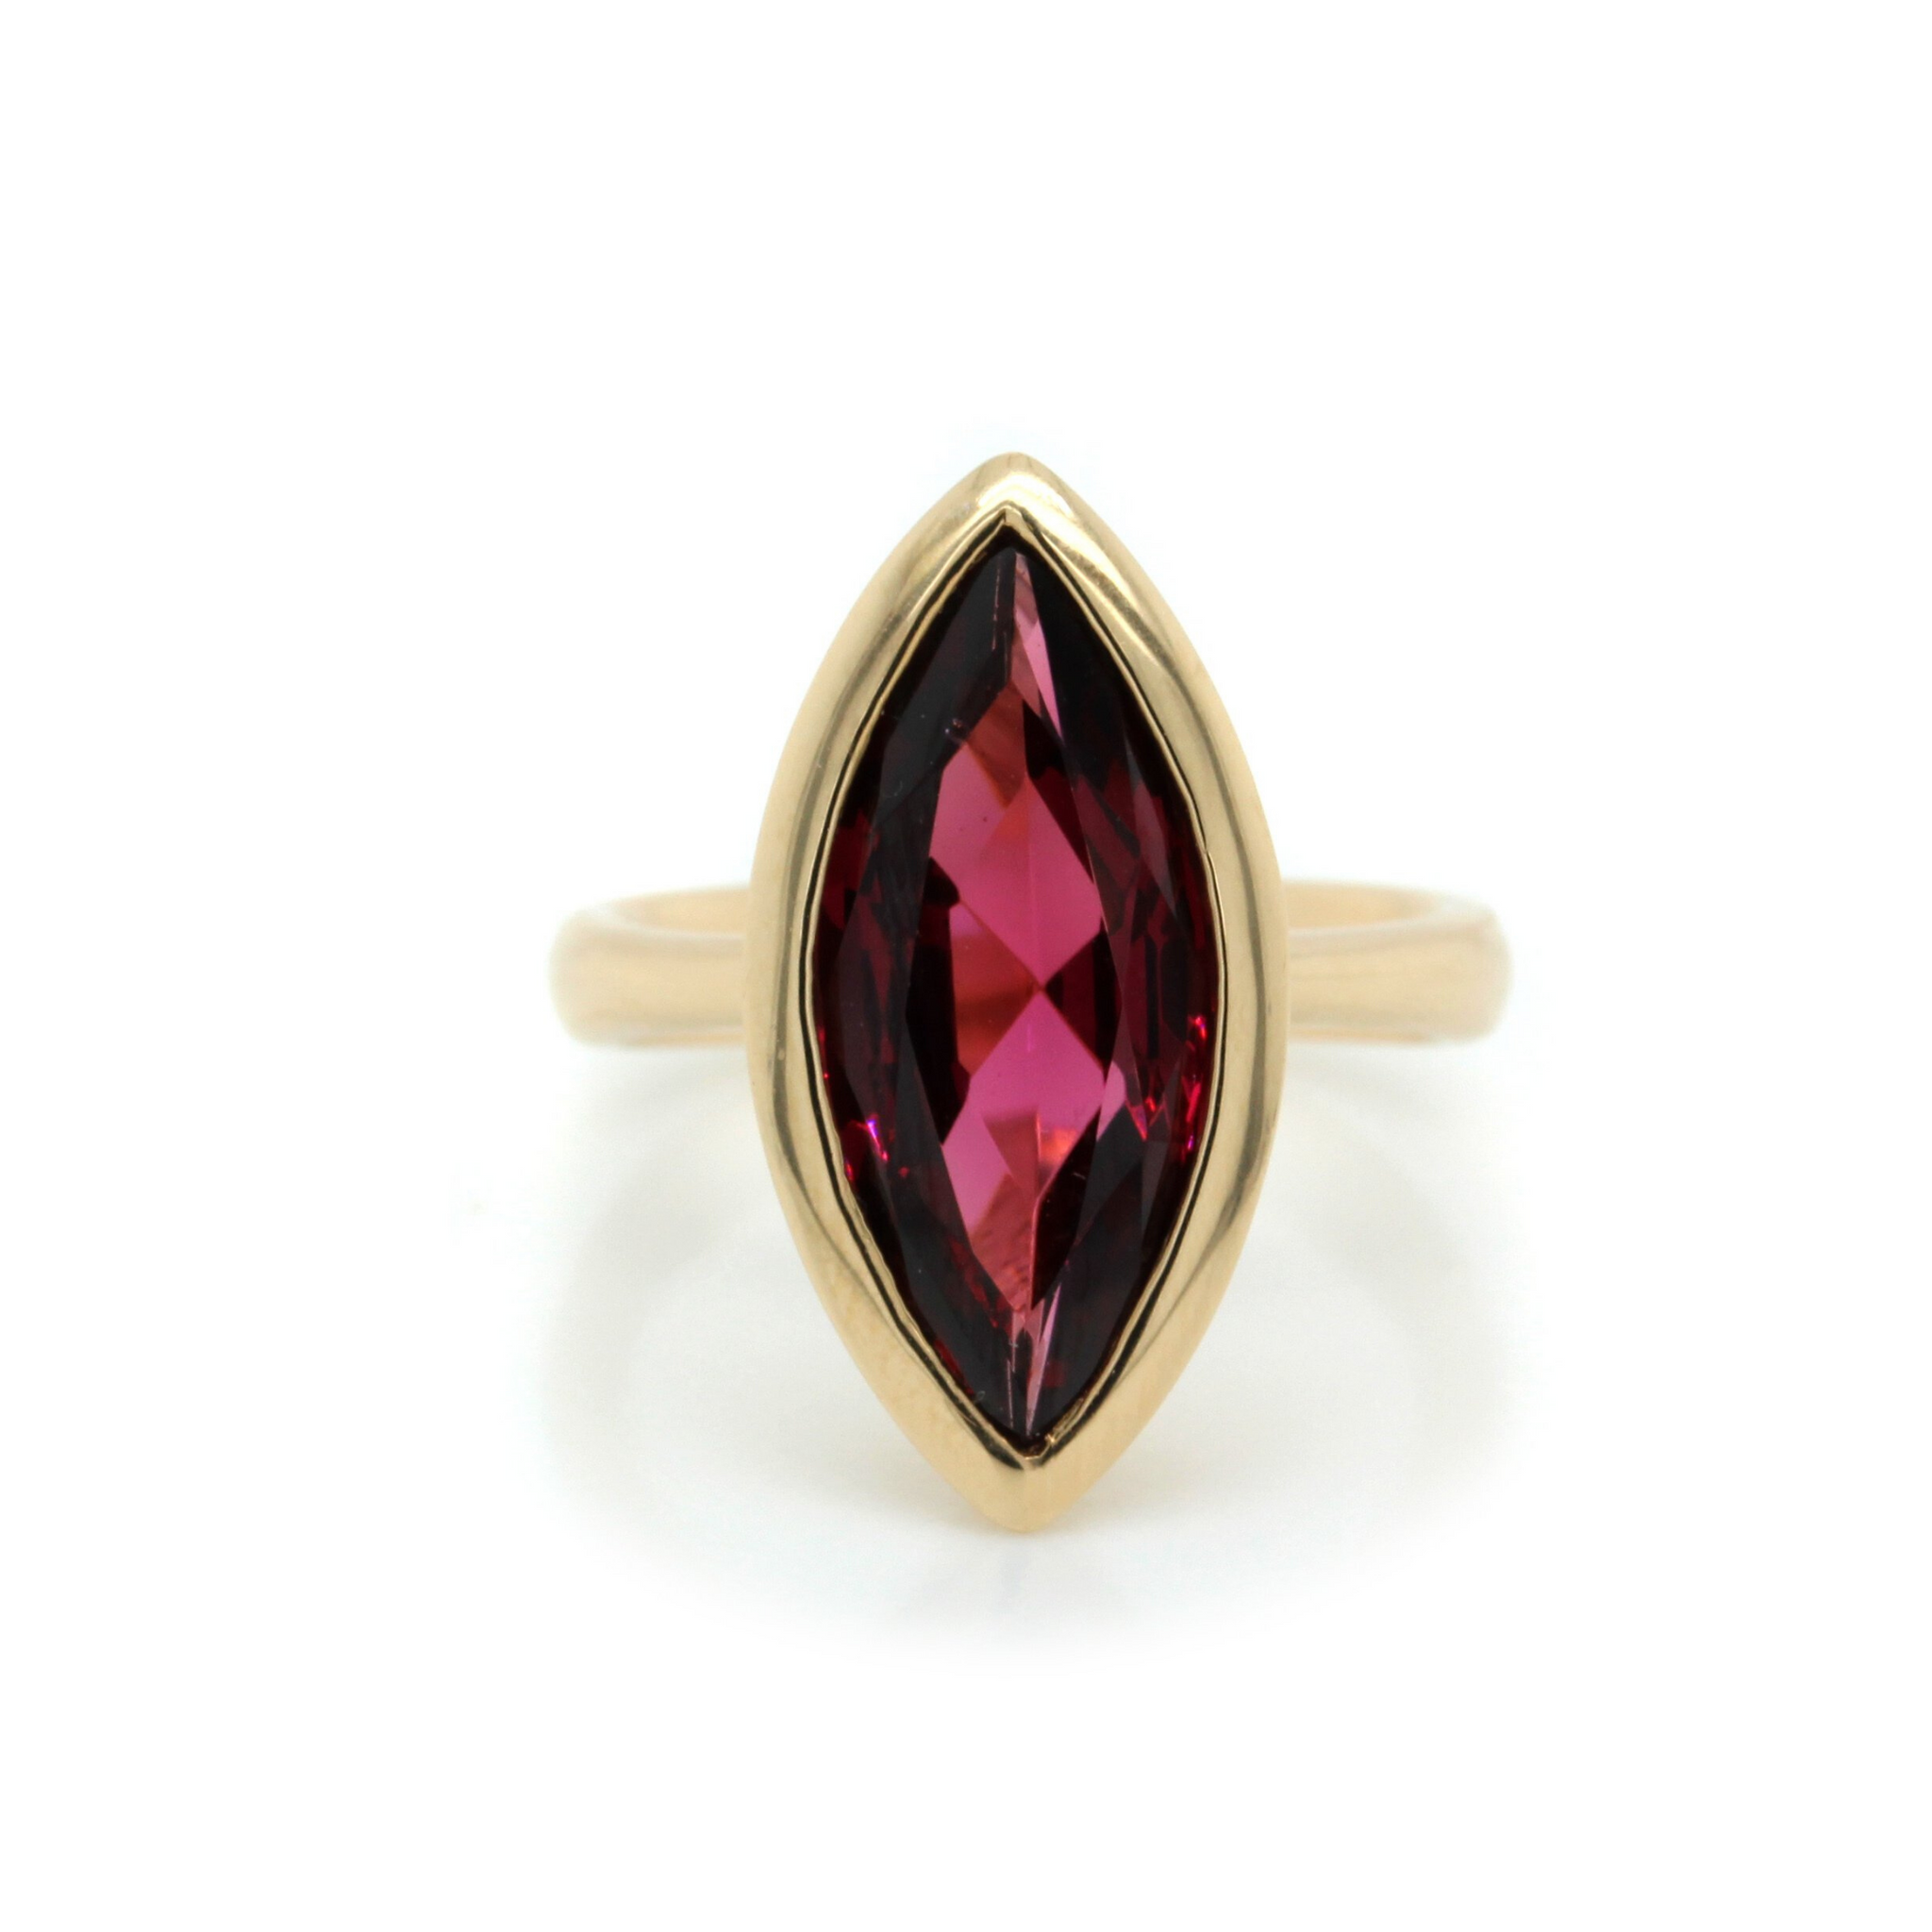 14K Yellow Gold Marquise Shaped Tourmaline Ring